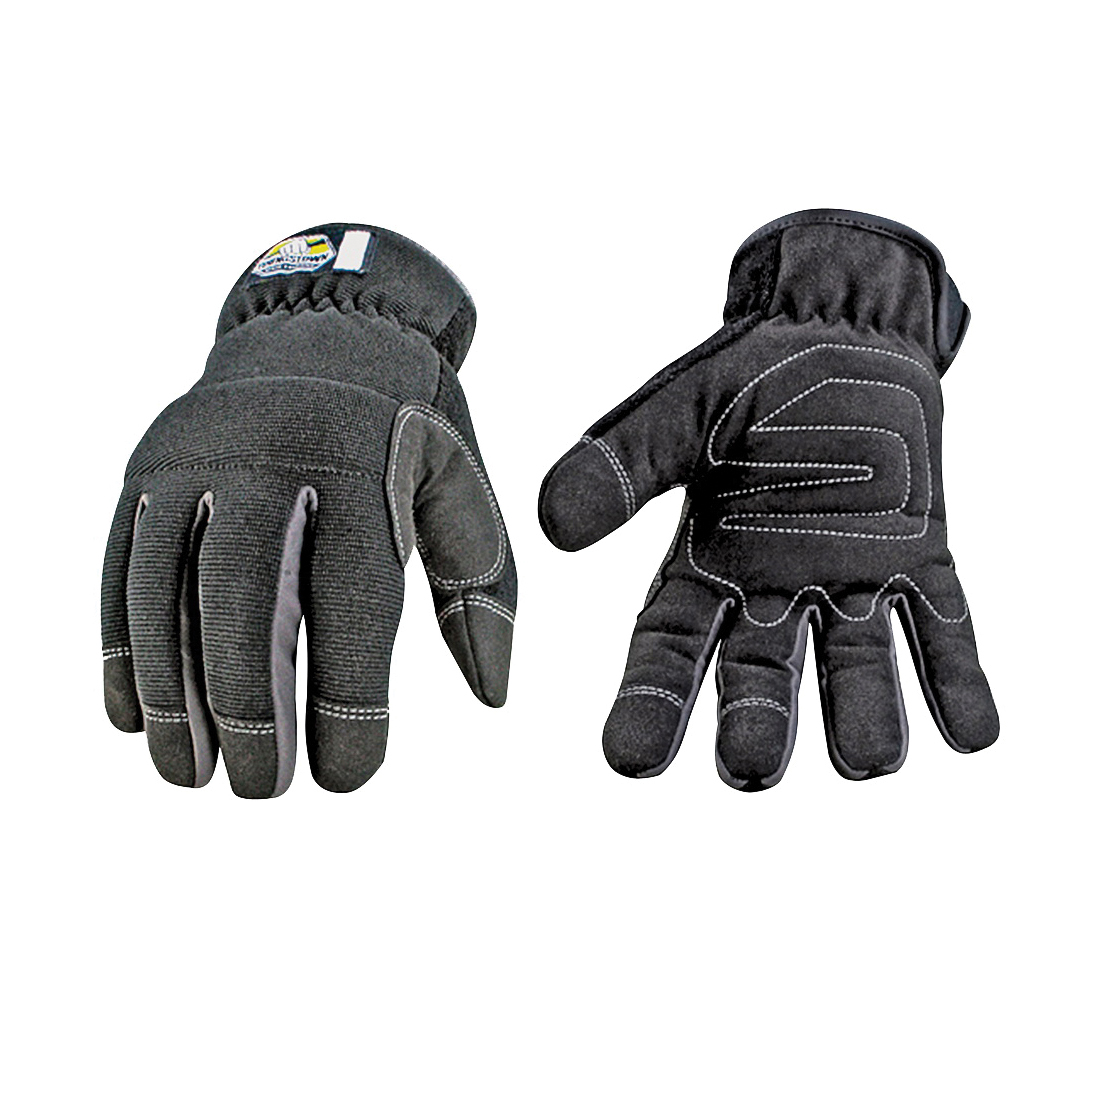 Picture of Youngstown Glove 12-3420-80-L Protective Gloves, L, Brow Wipe Thumb, Slip-On Cuff, Synthetic Leather